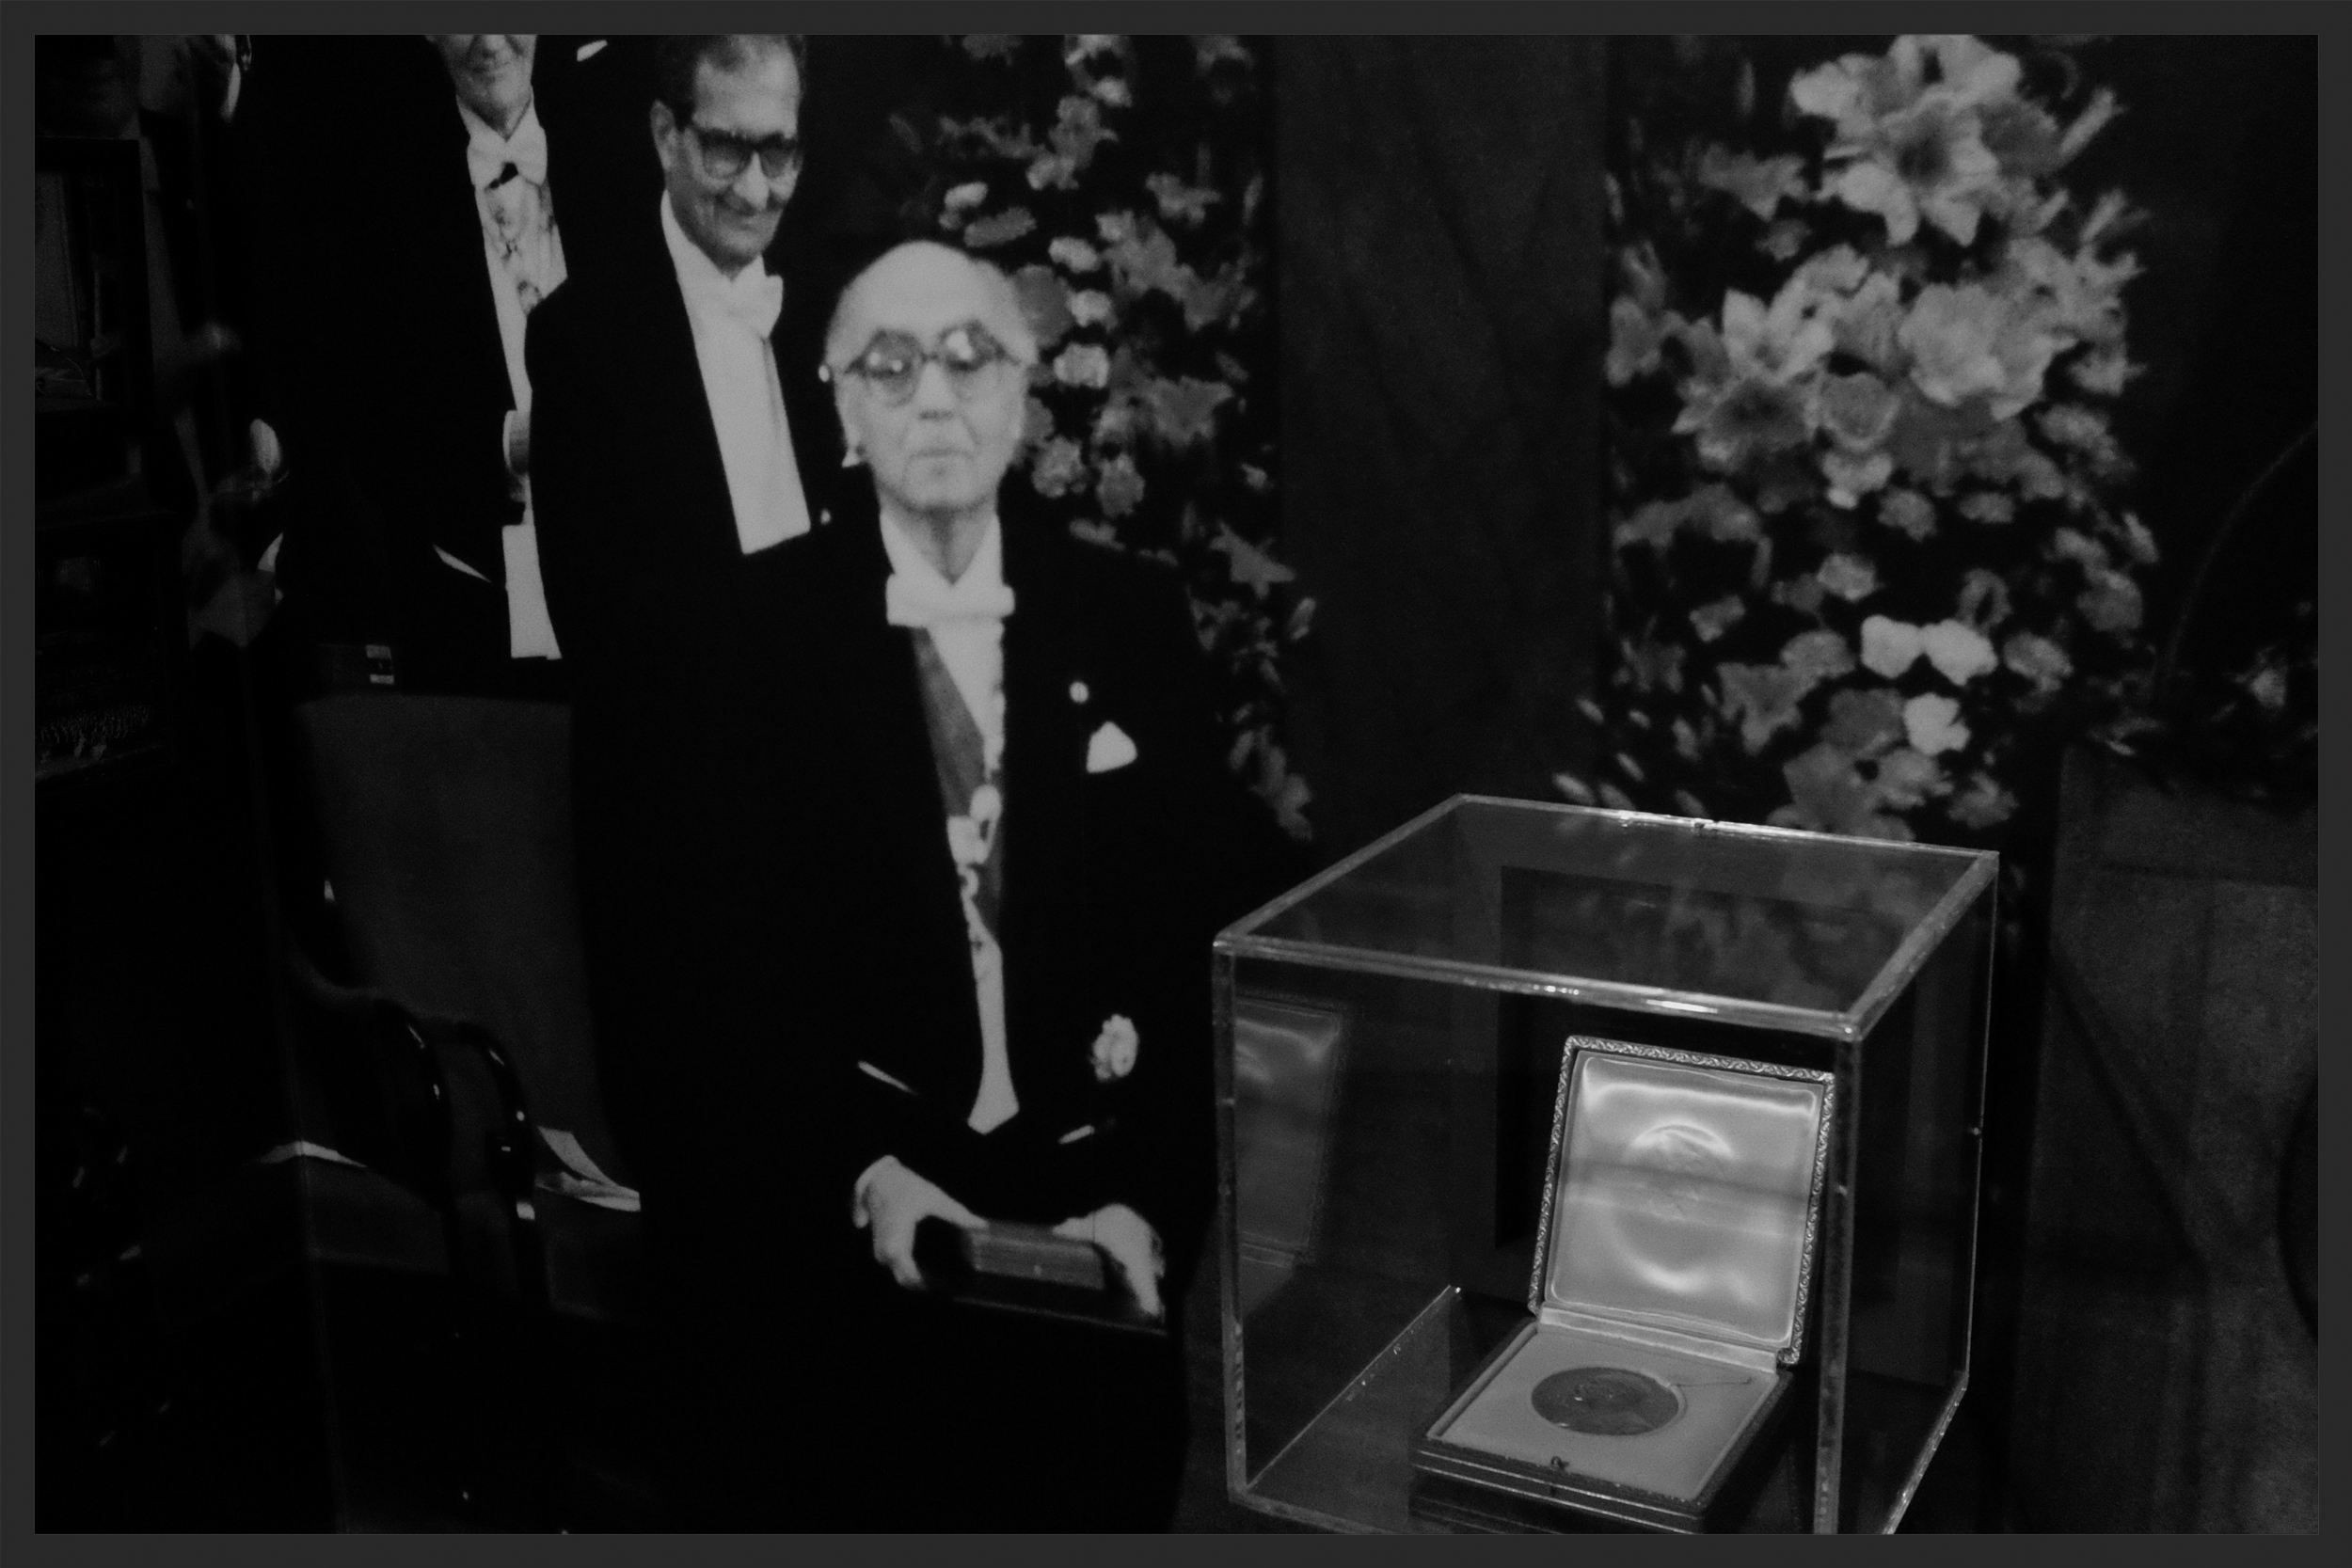 The Nobel Committee awarded Saramago the Nobel Prize in Literature in 1998, making him the first Portuguese winner.